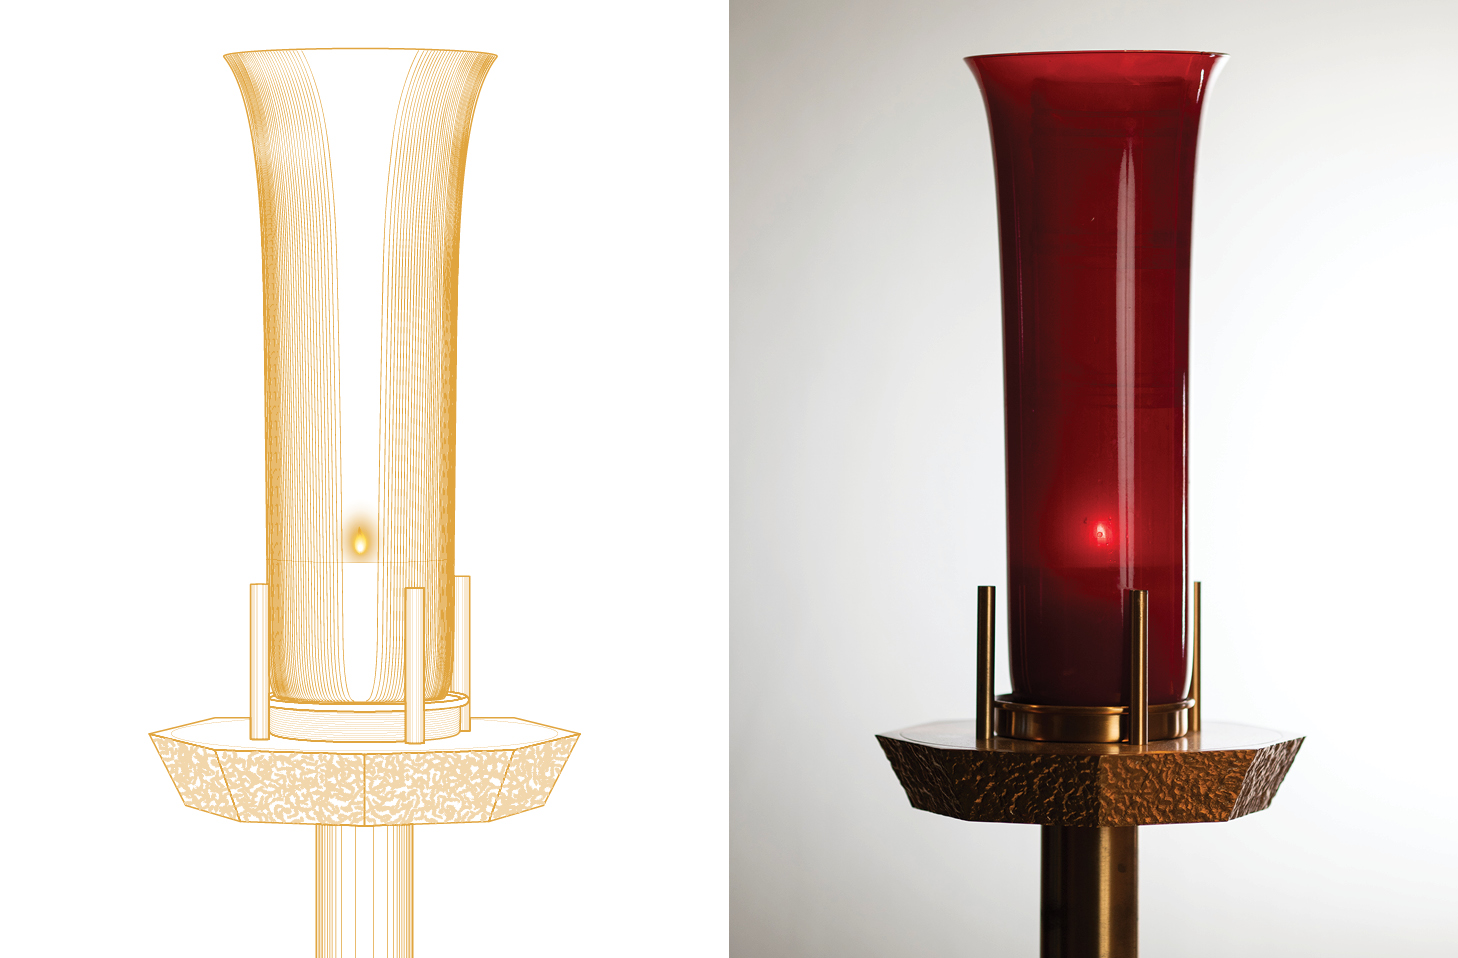 Catholic Tabernacle Candle - custom vector drawing for Diocese of Fort Worth © Rachel Marek 2019